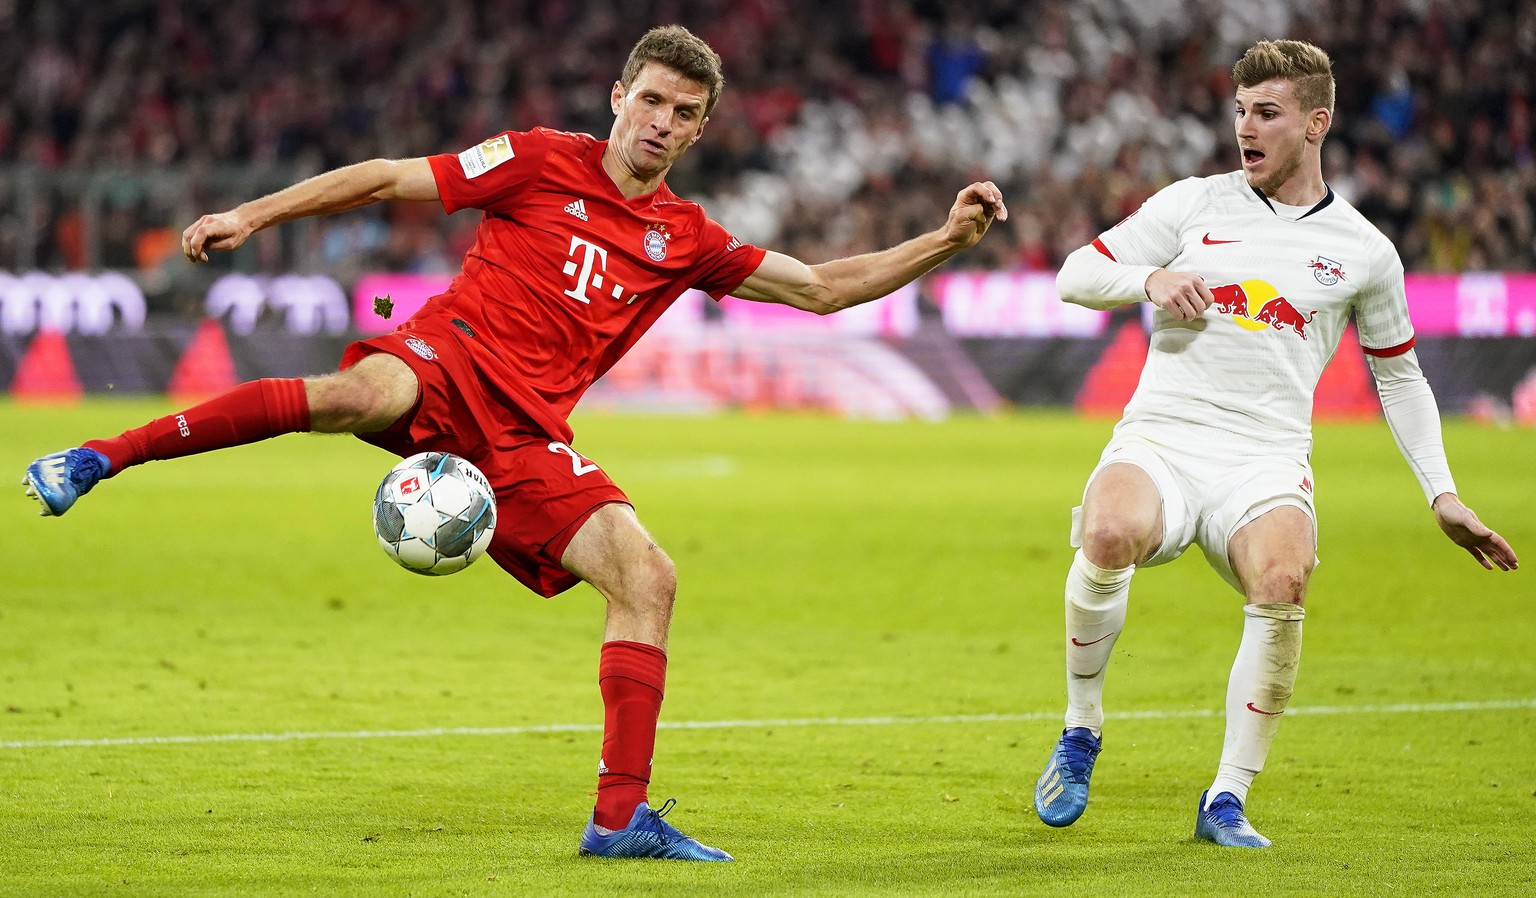 epa08206276 Bayern Munich's Thomas Mueller (L) in action against Leipzig's Timo Werner (R) during the German Bundesliga soccer match between FC Bayern Munich and RB Leipzig in Munich, Germany, 09 February 2020.  EPA/RONALD WITTEK CONDITIONS - ATTENTION: The DFL regulations prohibit any use of photographs as image sequences and/or quasi-video.